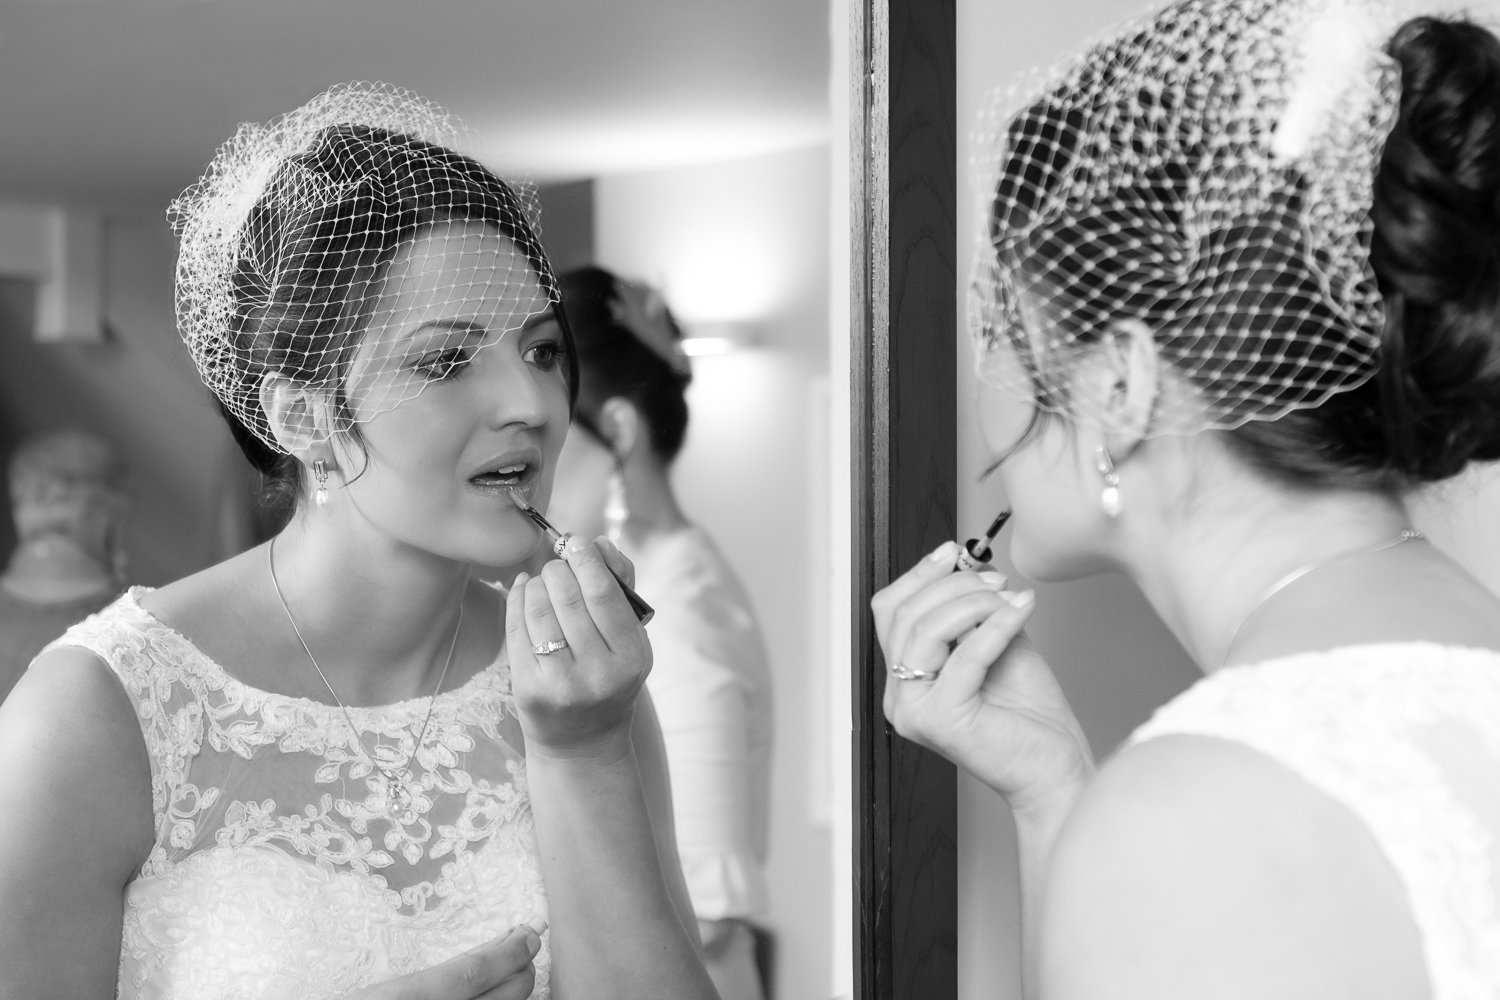 Classic wedding photograph of the bride applying lipstick in the mirror - you see the reflection of her face in the mirror and the side of her head in the foreground out of focus